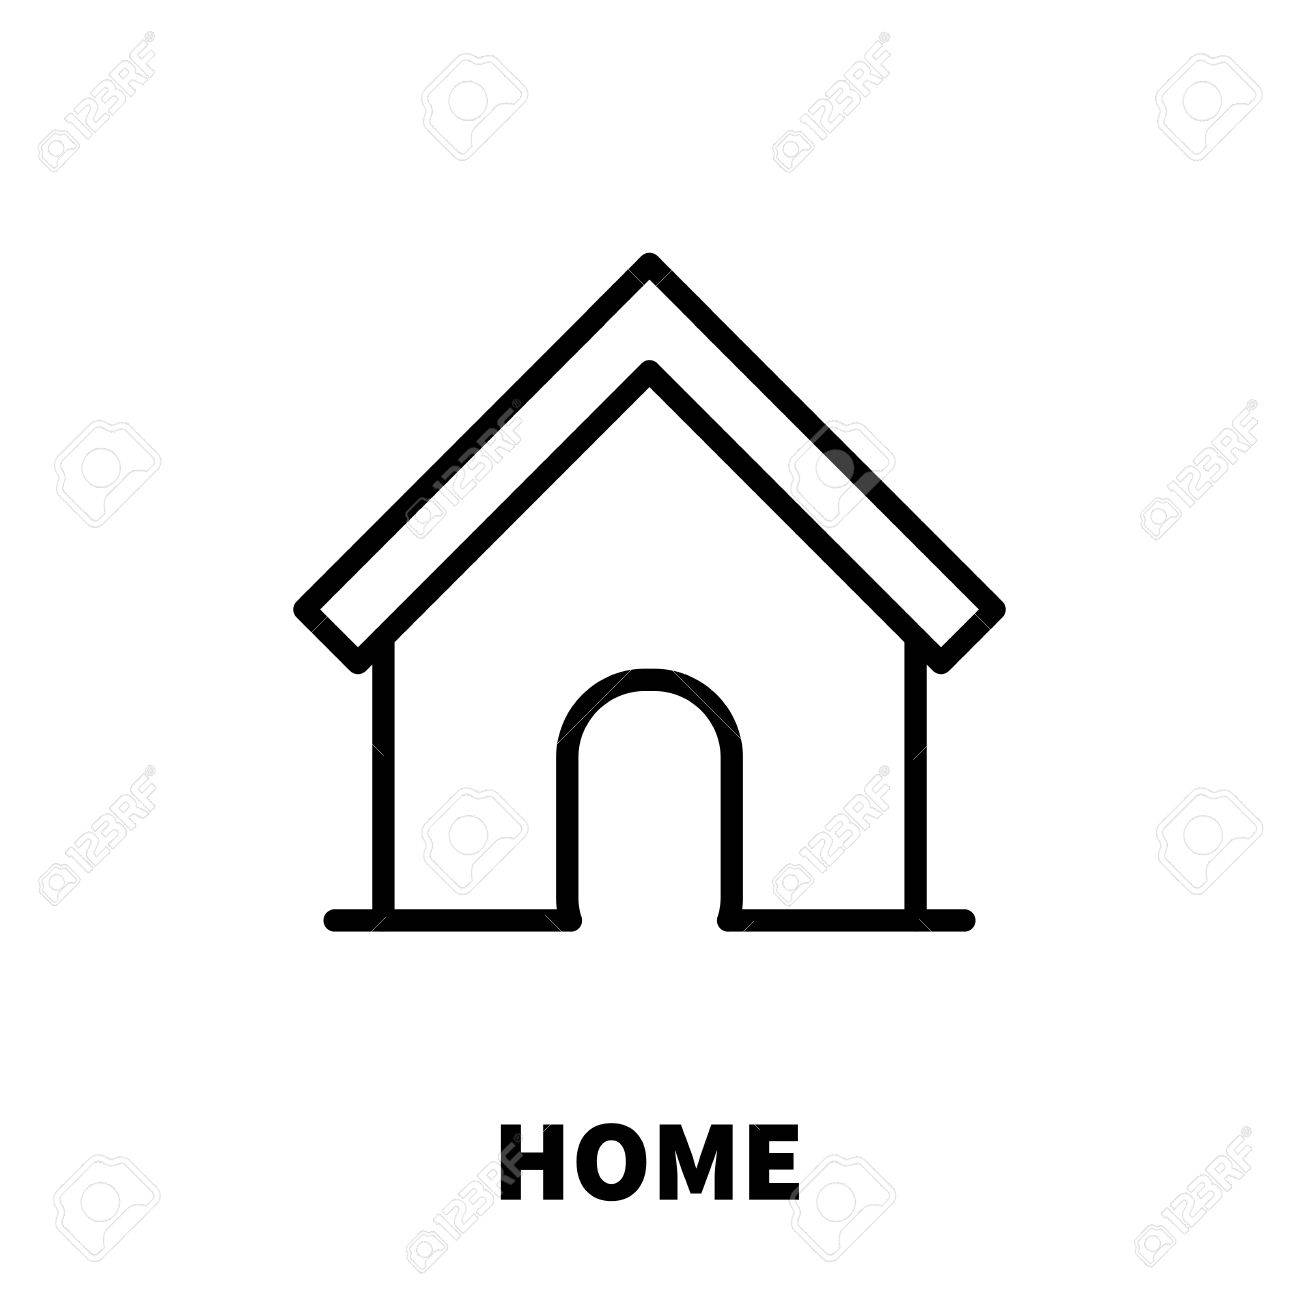 Home icon or logo in modern line style high quality black outline pictogram for web